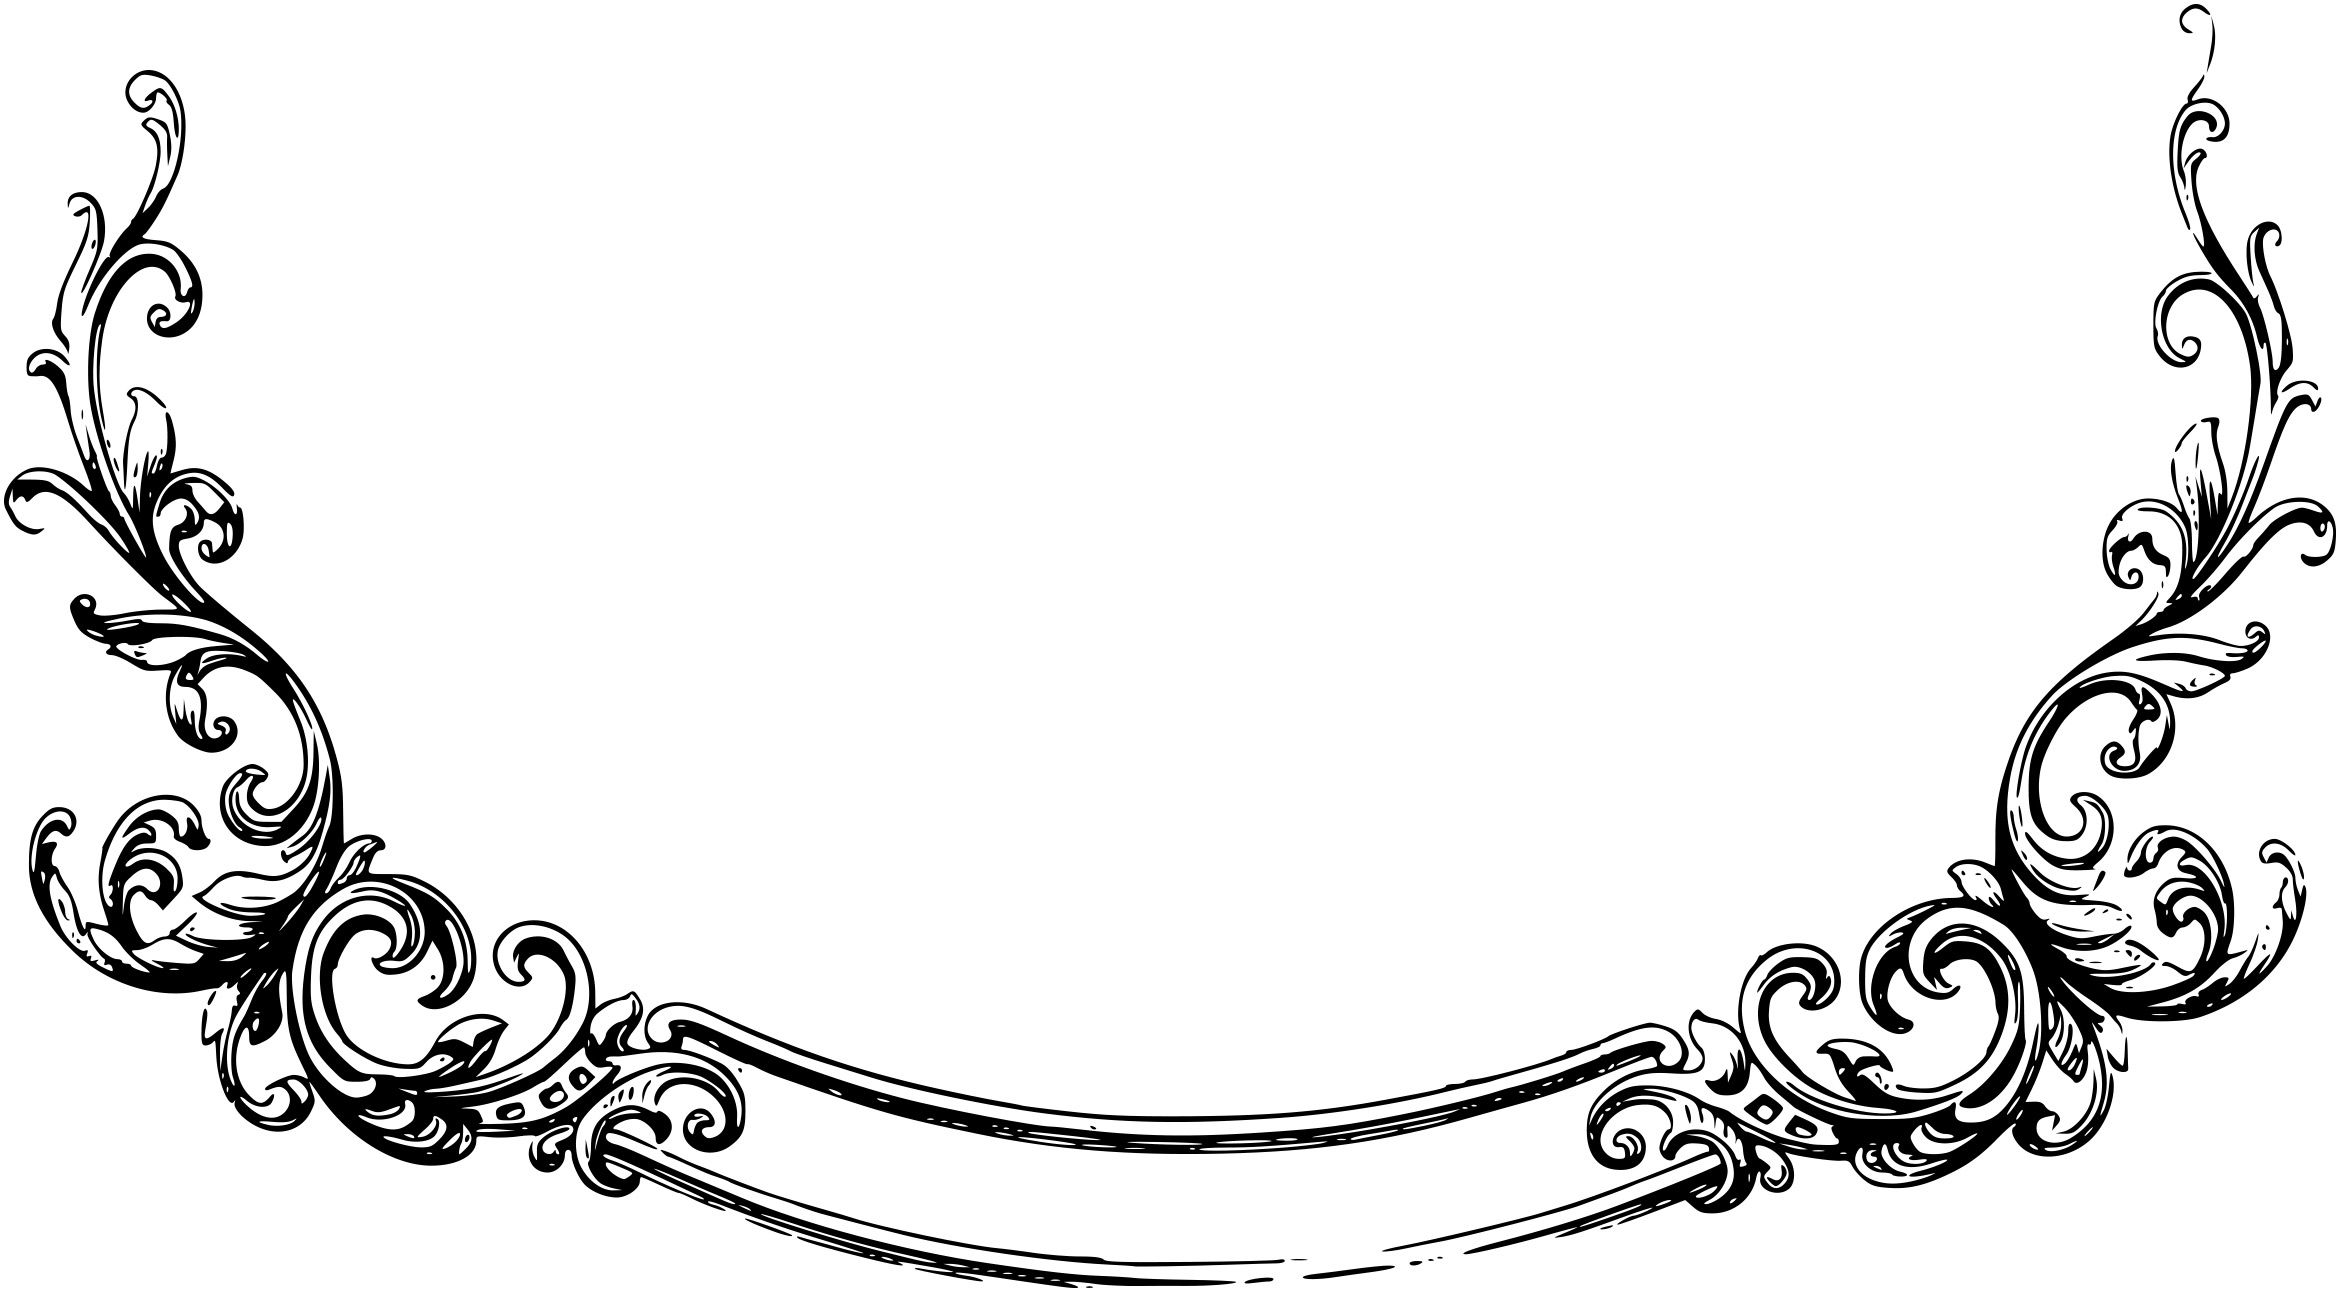 Clip art banners border. Filigree clipart french scroll